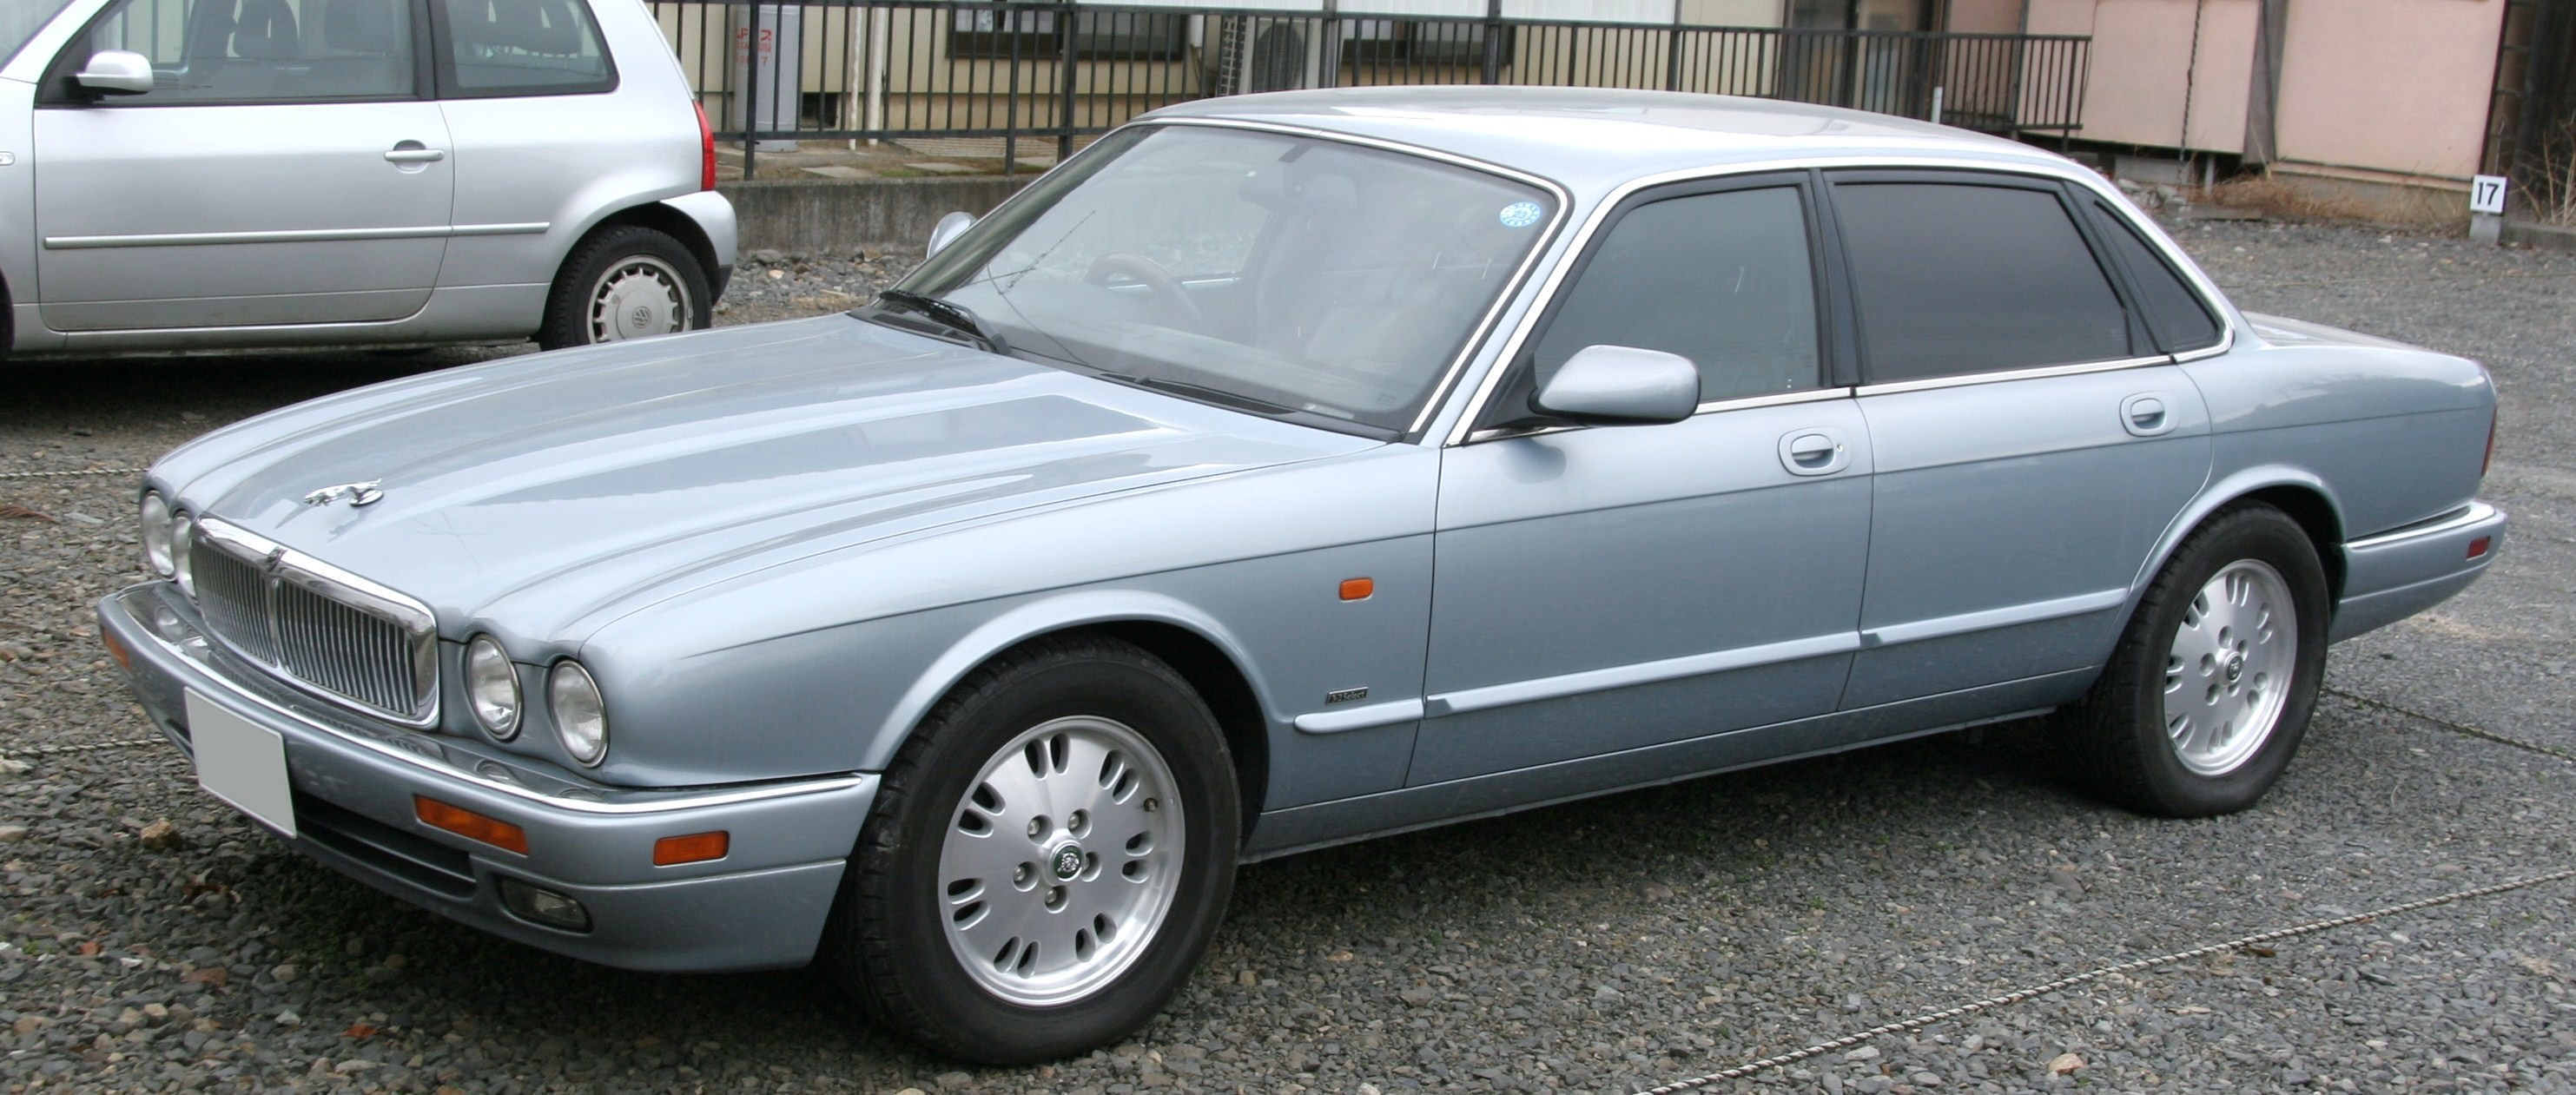 1994 Jaguar Xj-series #7